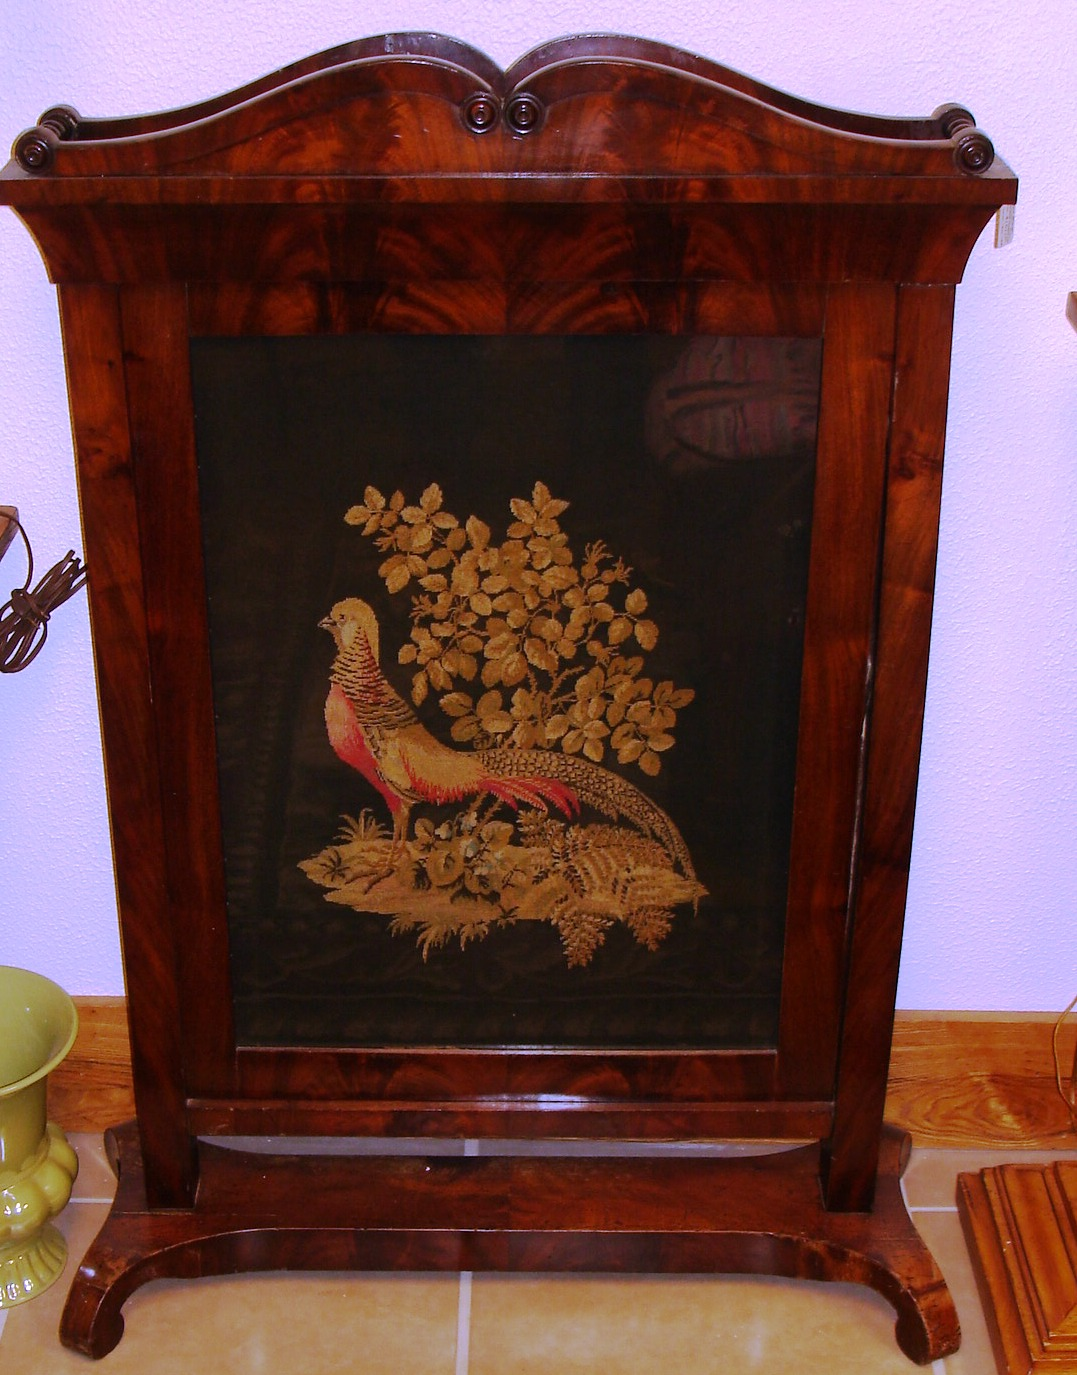 Baron Von Balsiger's Antiques: Fantastic Fireplace Screen Circa 1880